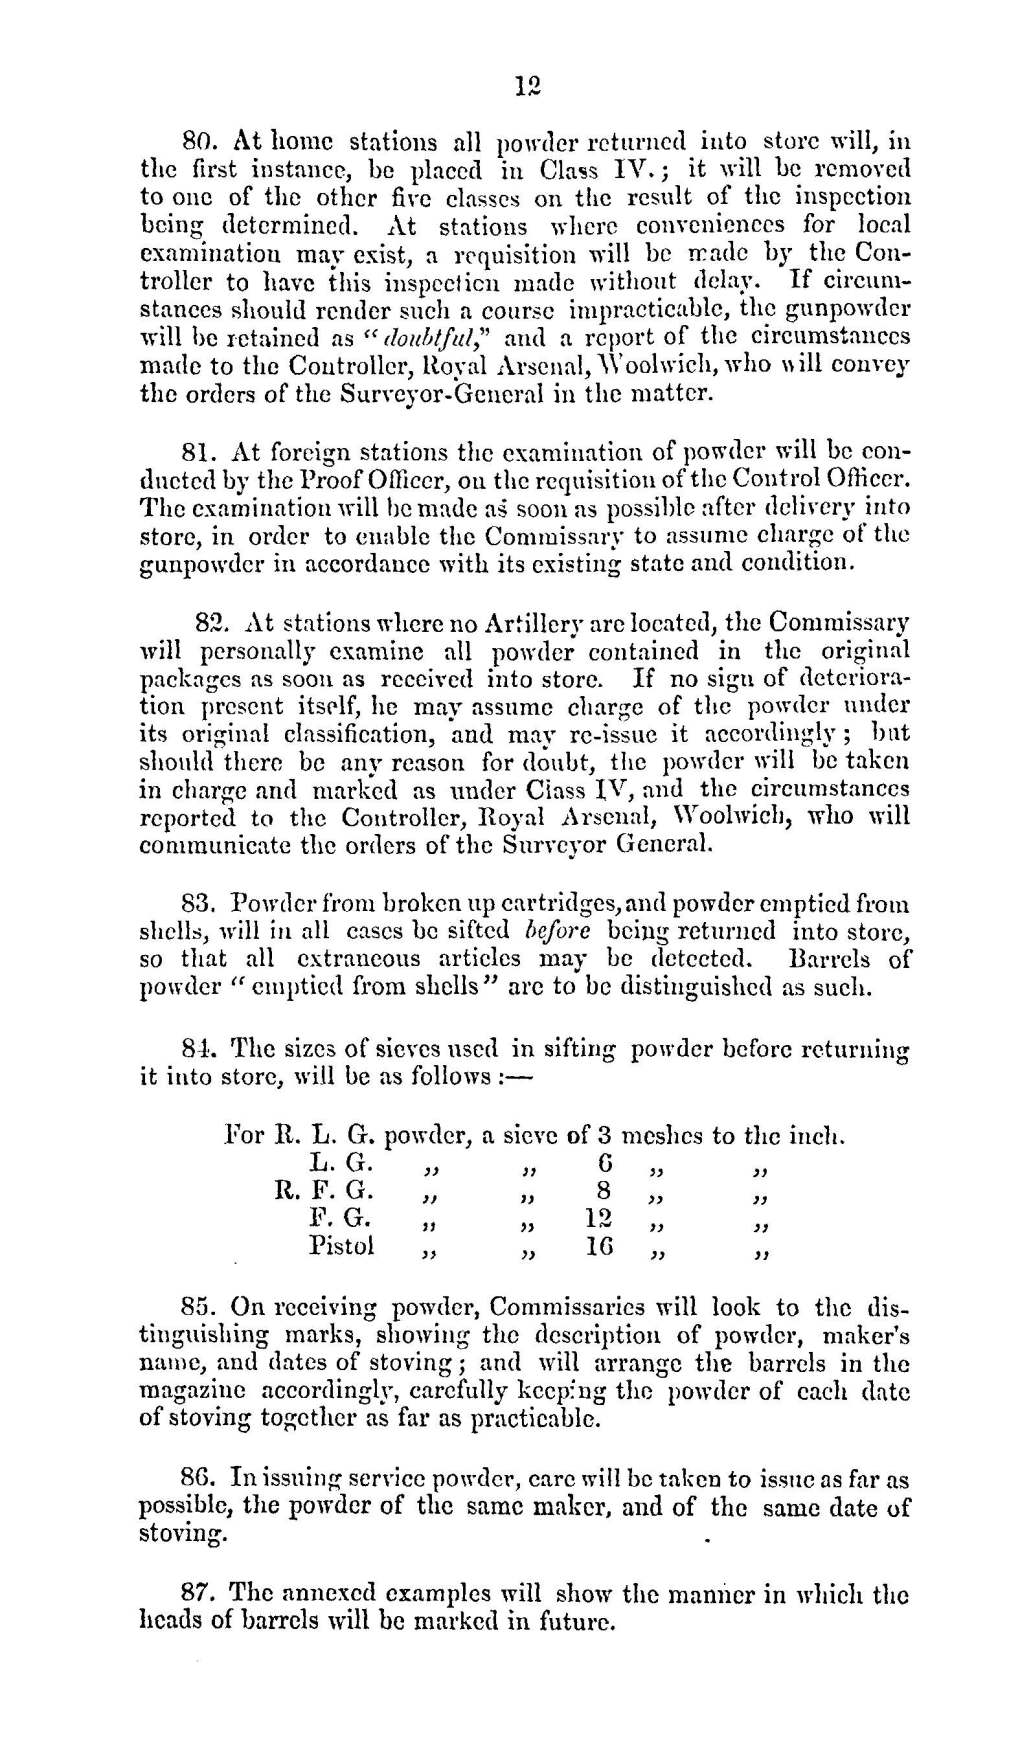 gunpowder regs_Page_12